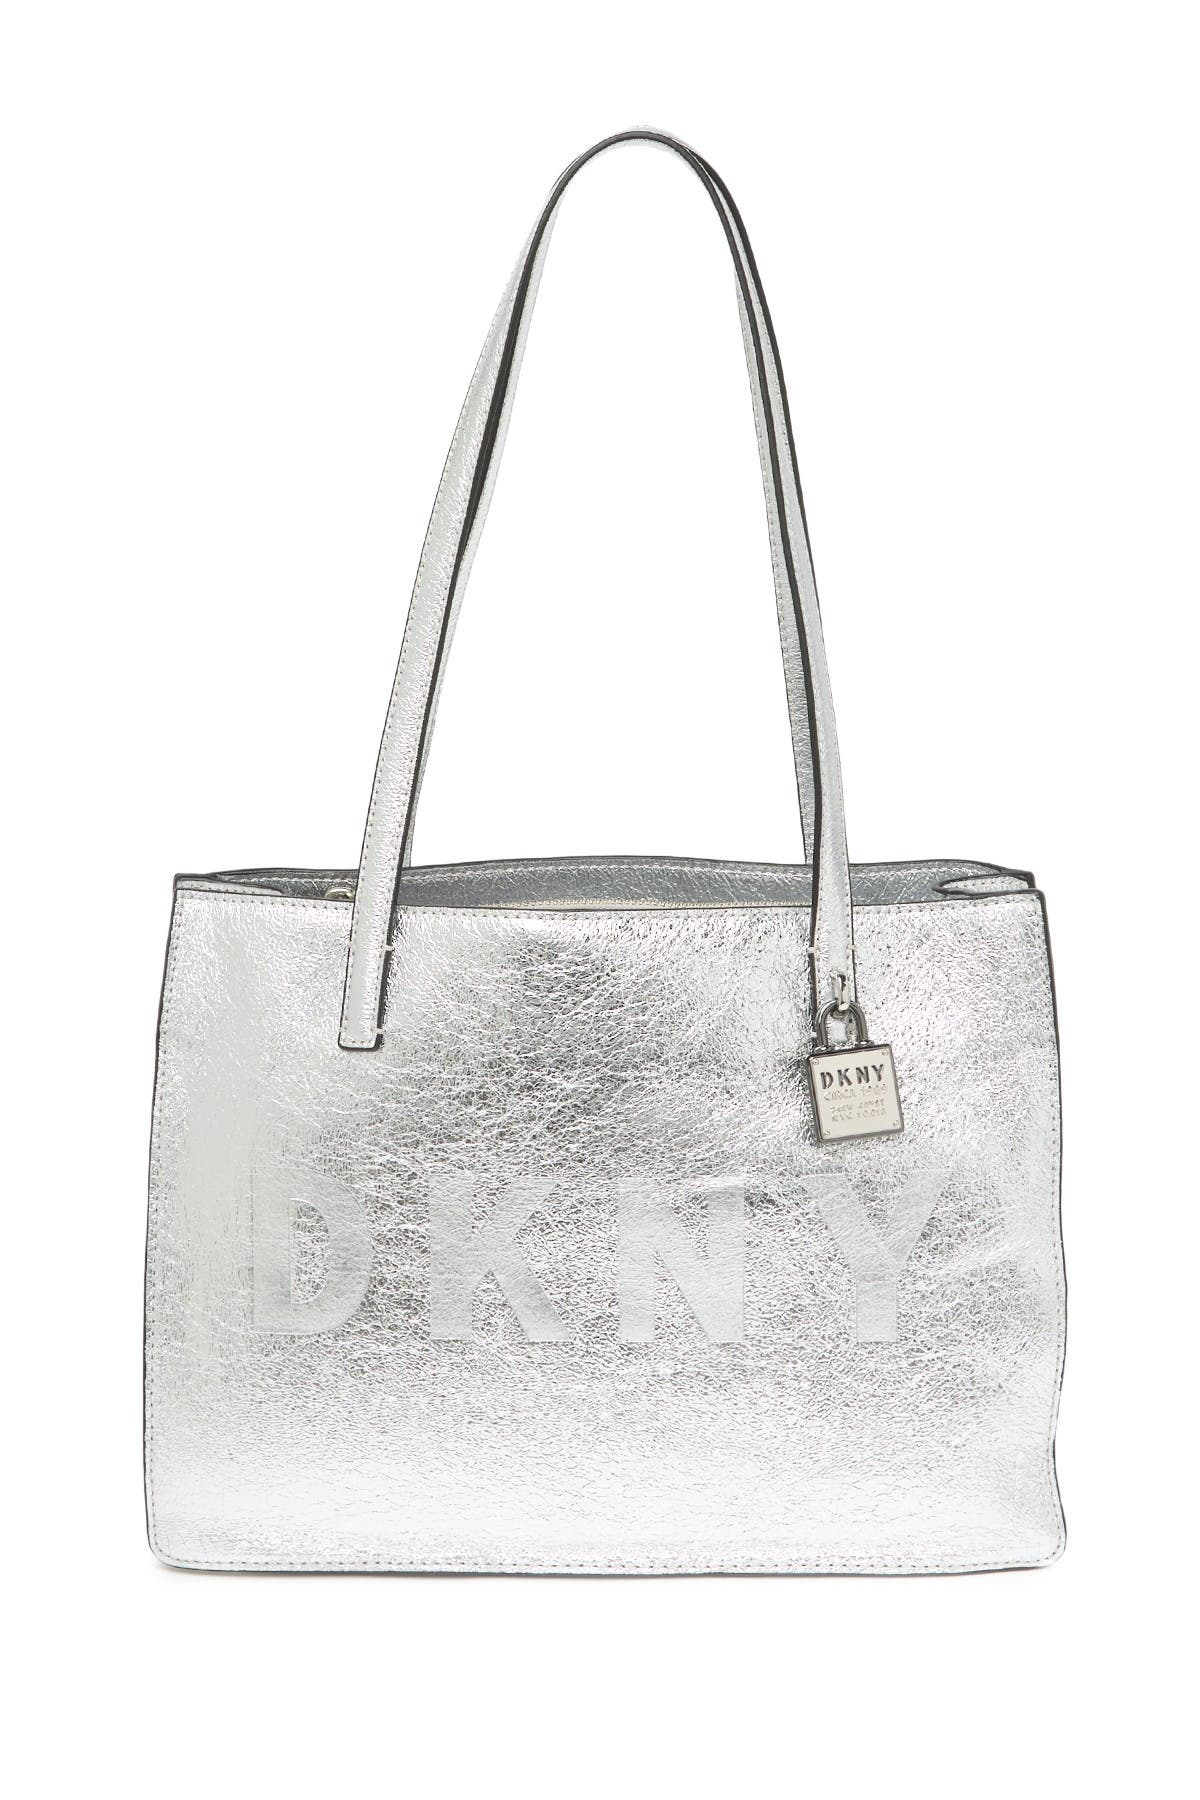 Image of DKNY Commuter Medium Tote Bag